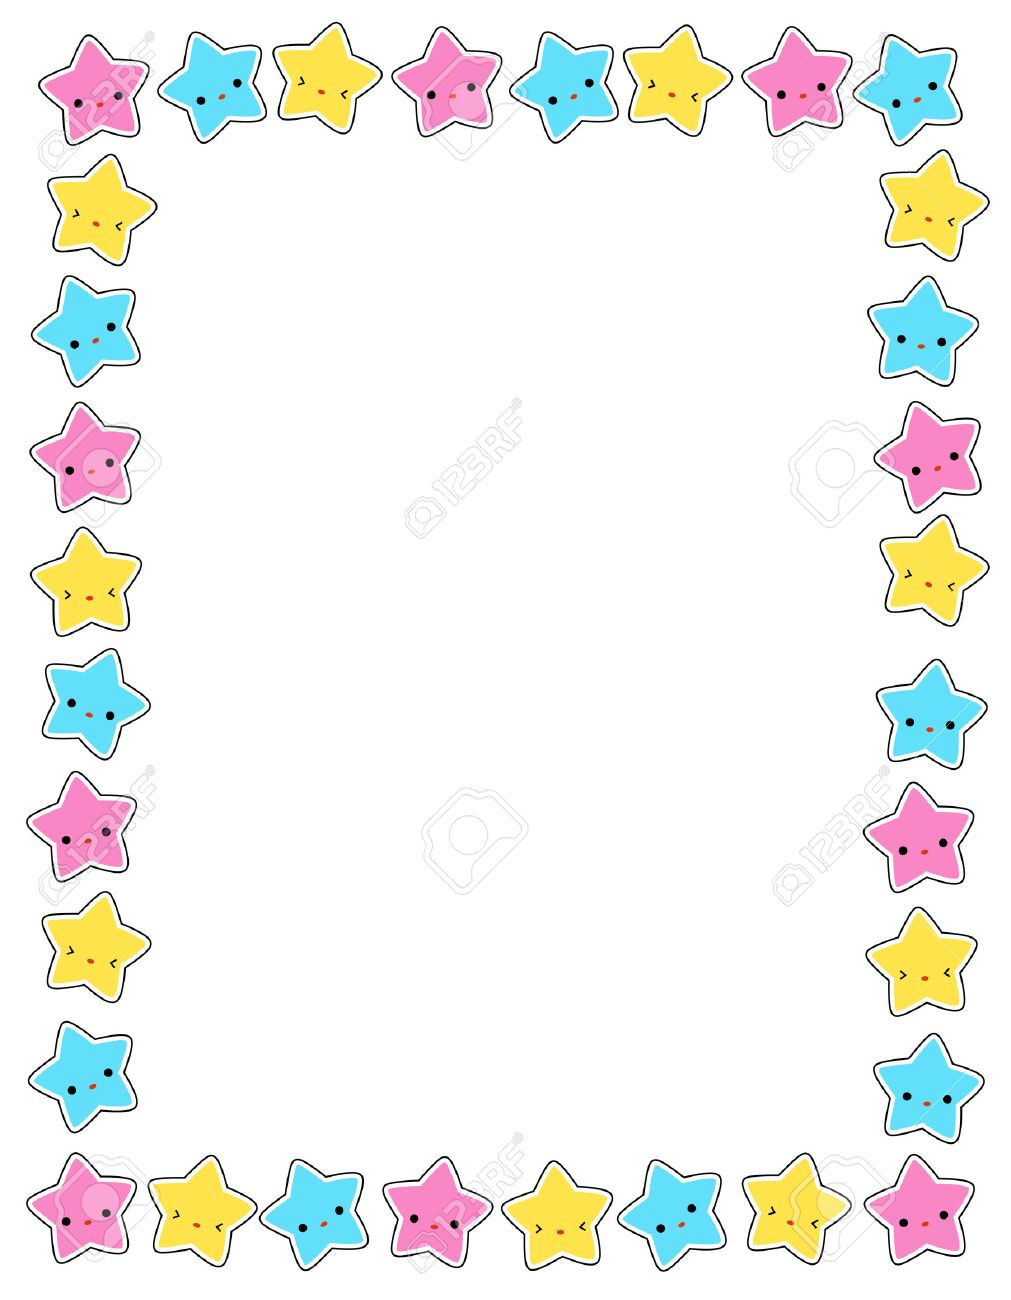 Cute Colorful Stars Border / Frame For Greeting Cards, Party ...